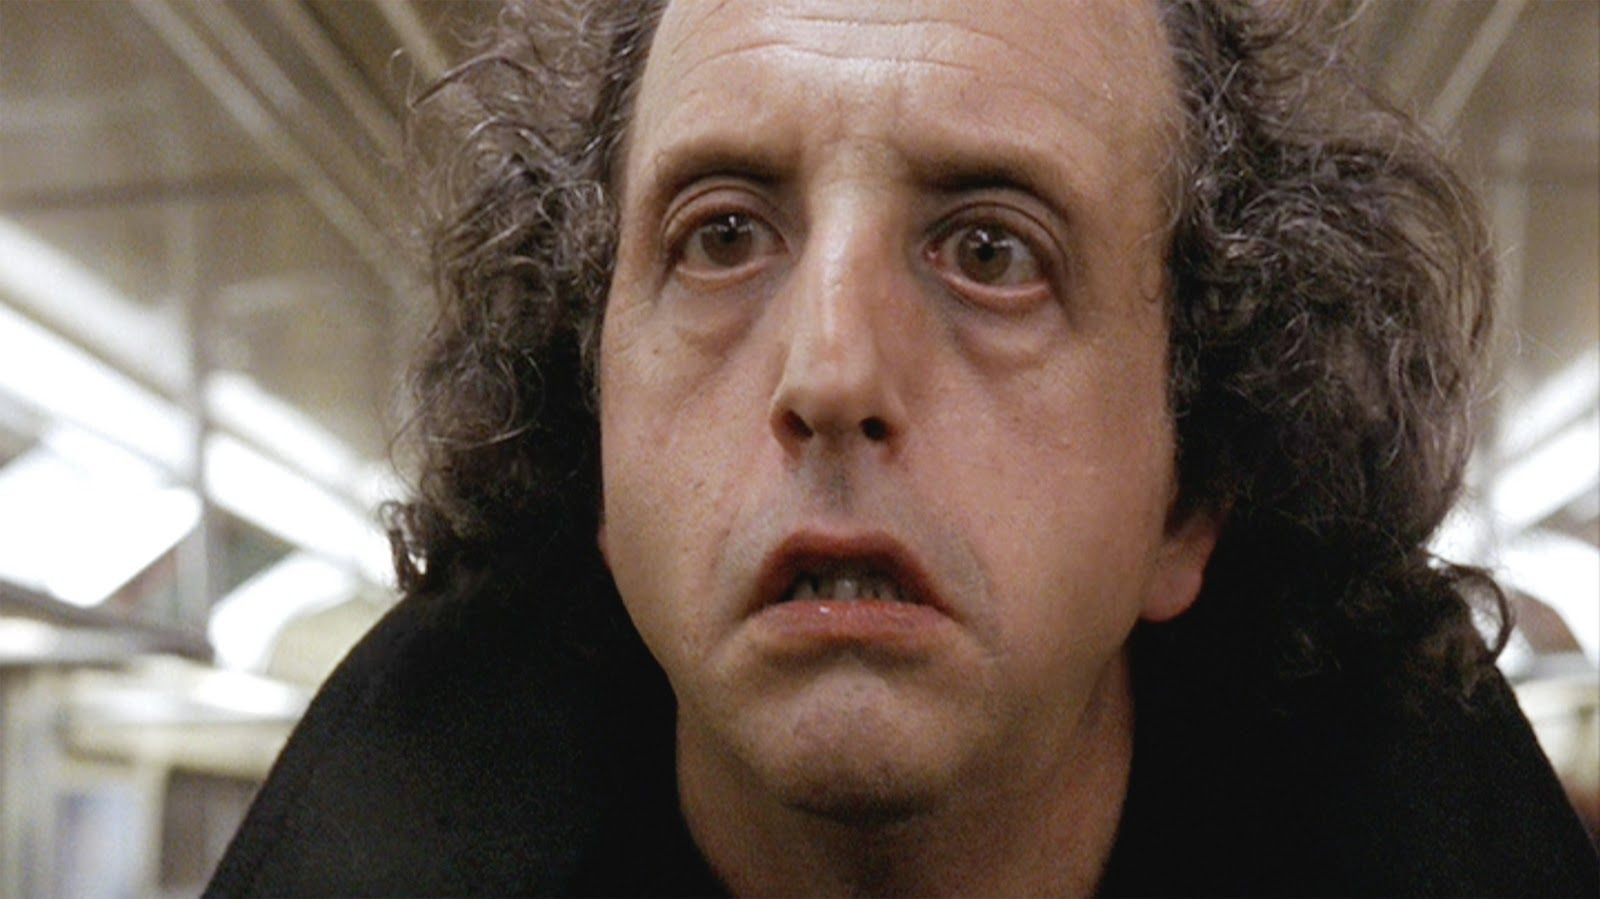 Vincent Schiavelli | Faces | Marfan syndrome, How to memorize things